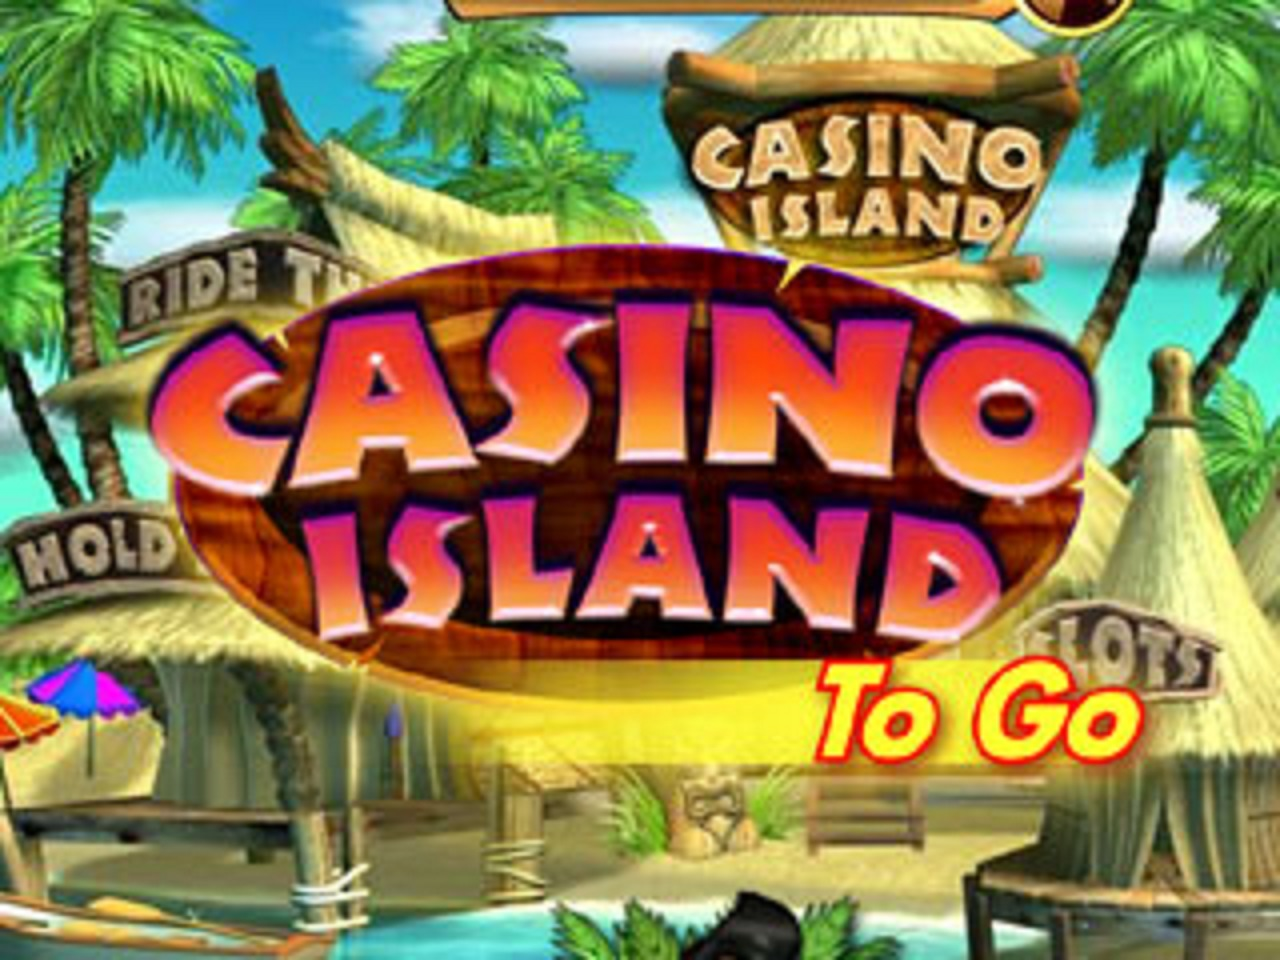 treasue island hotel and casino